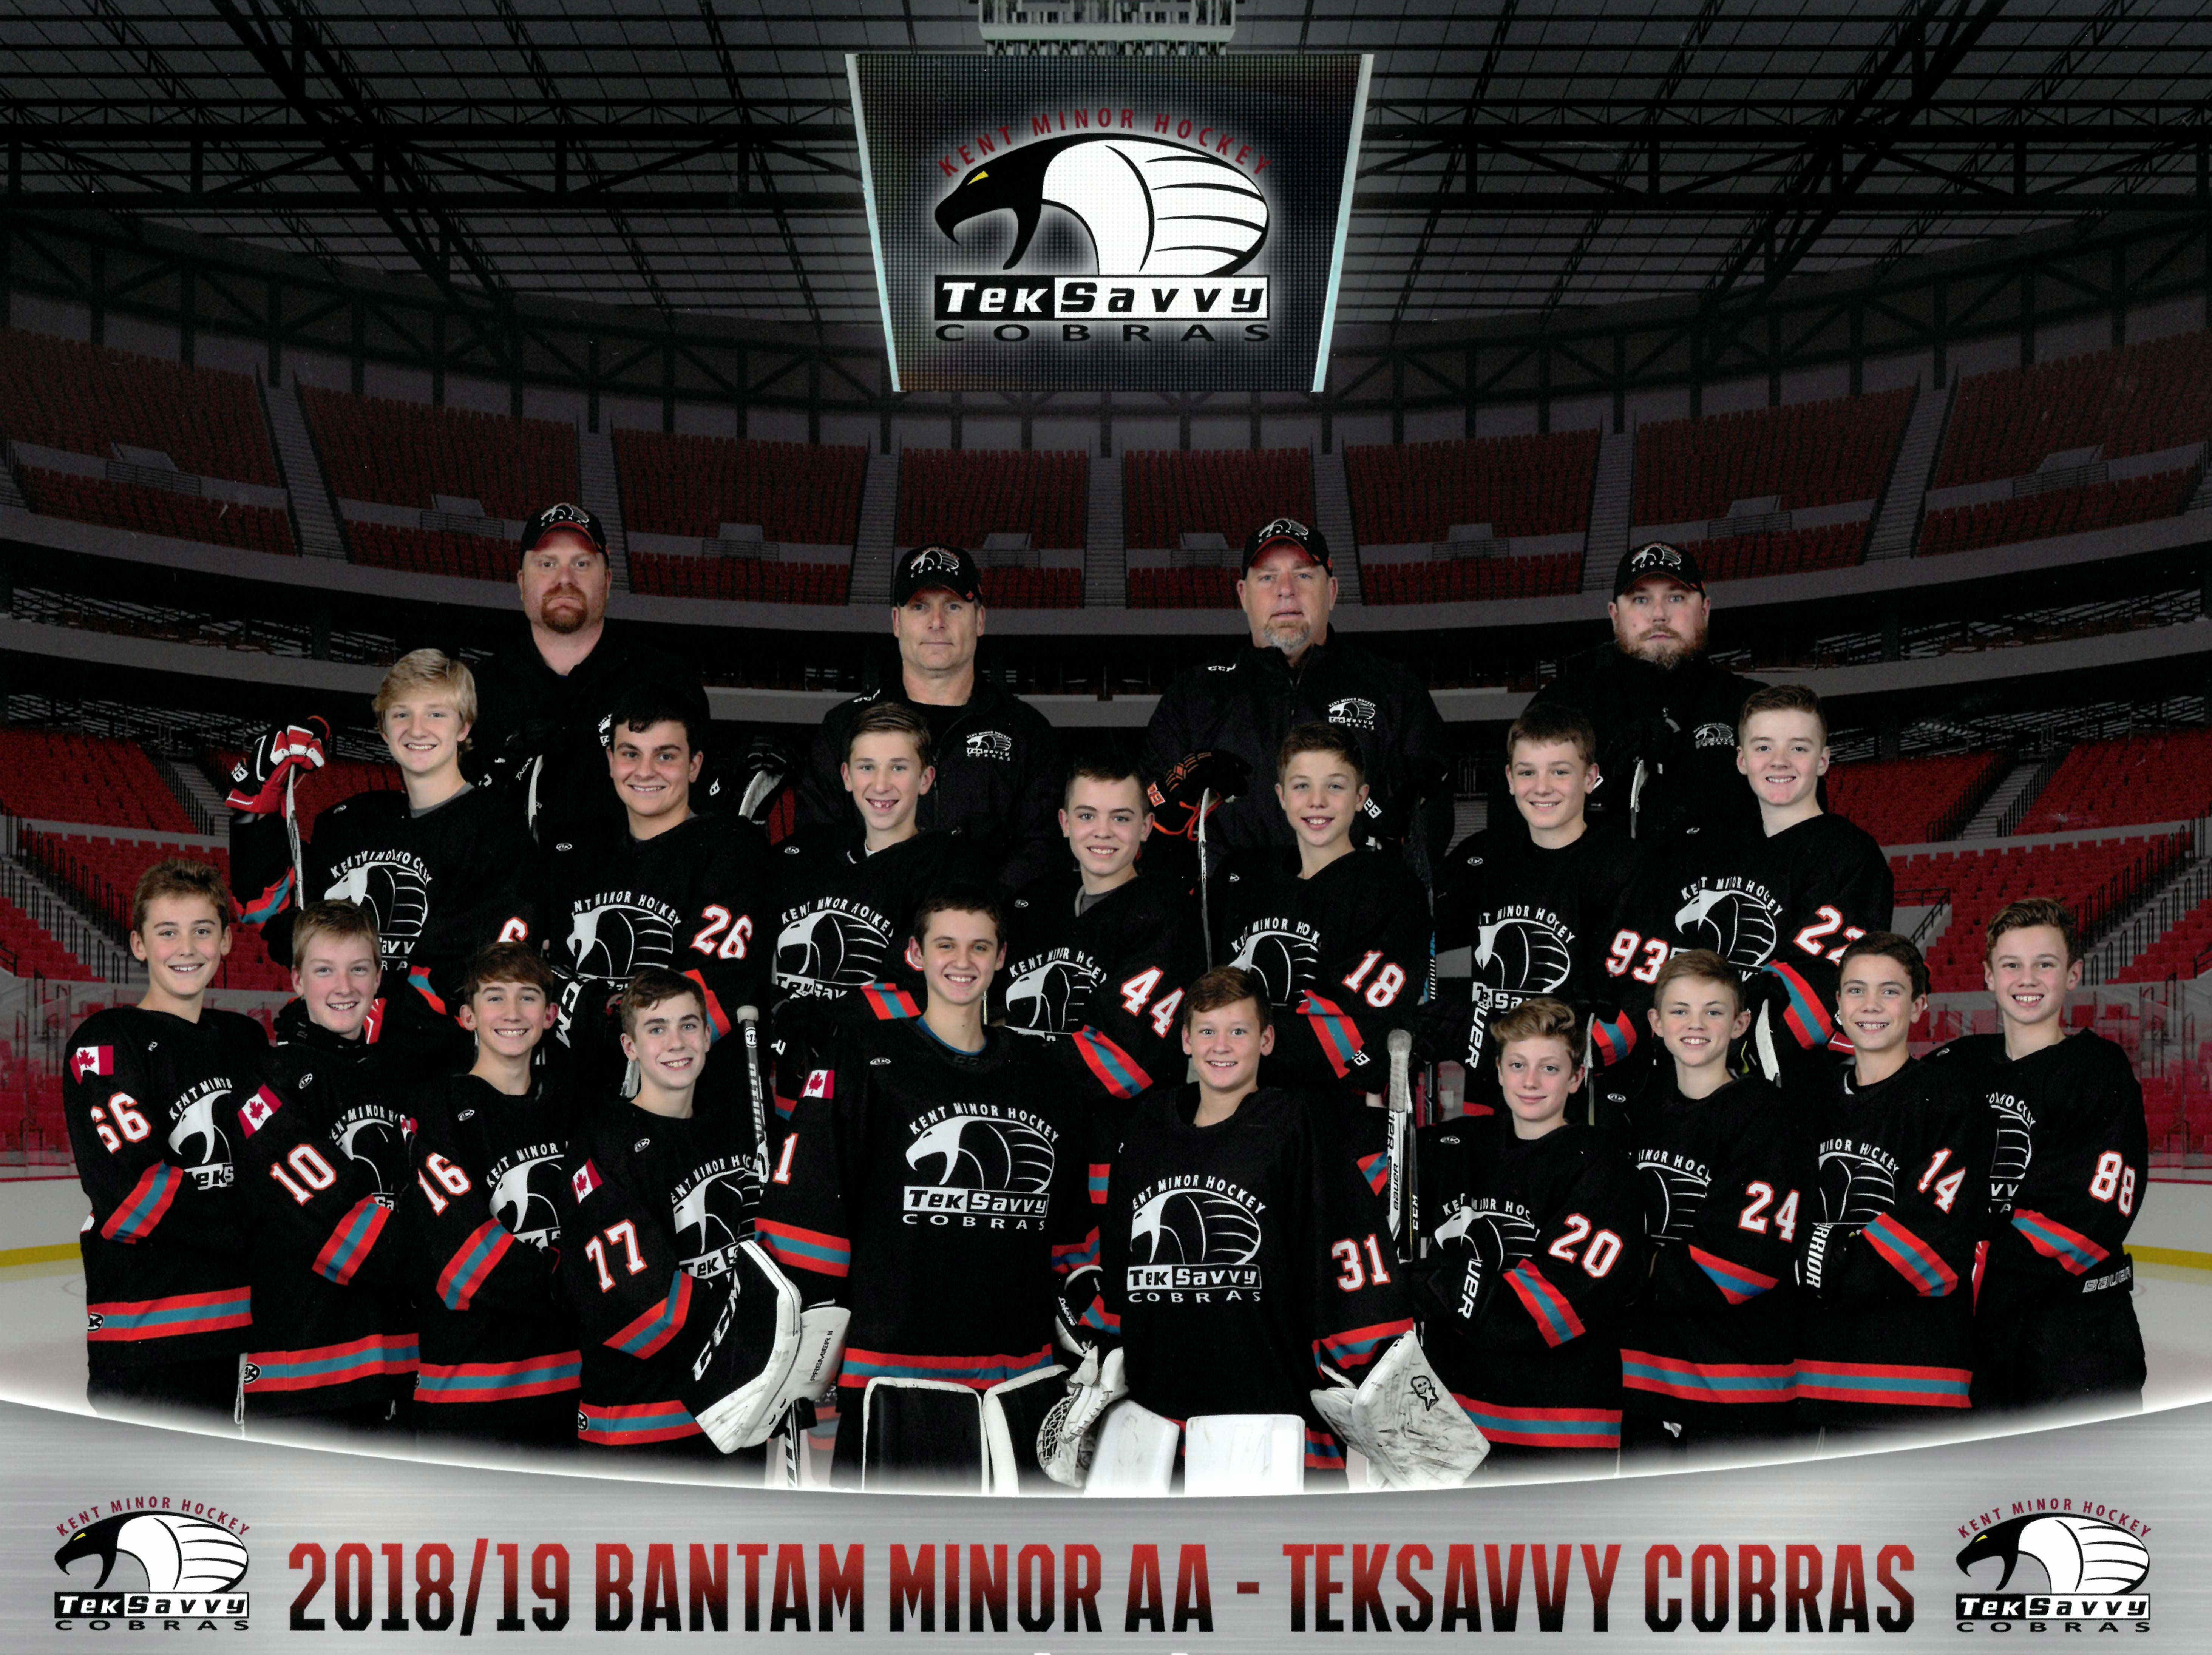 2018/19 Bantam Minor AA TekSavvy Cobras